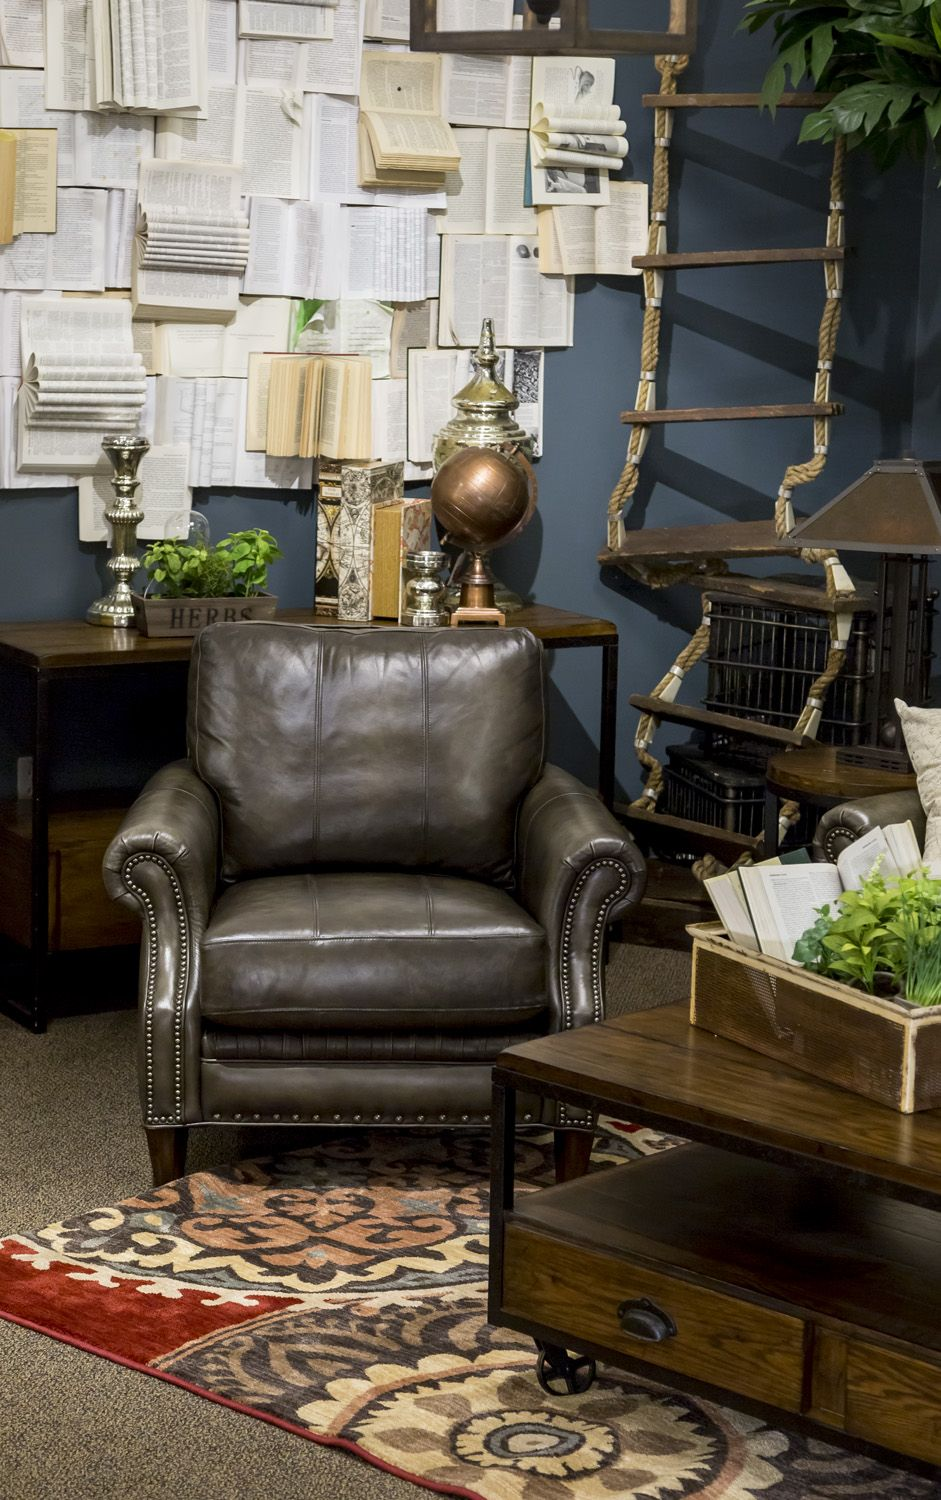 Introducing the latest style trend at nebraska furniture mart hip vintage its a little bit modern industrial a touch of antique book store with rustic